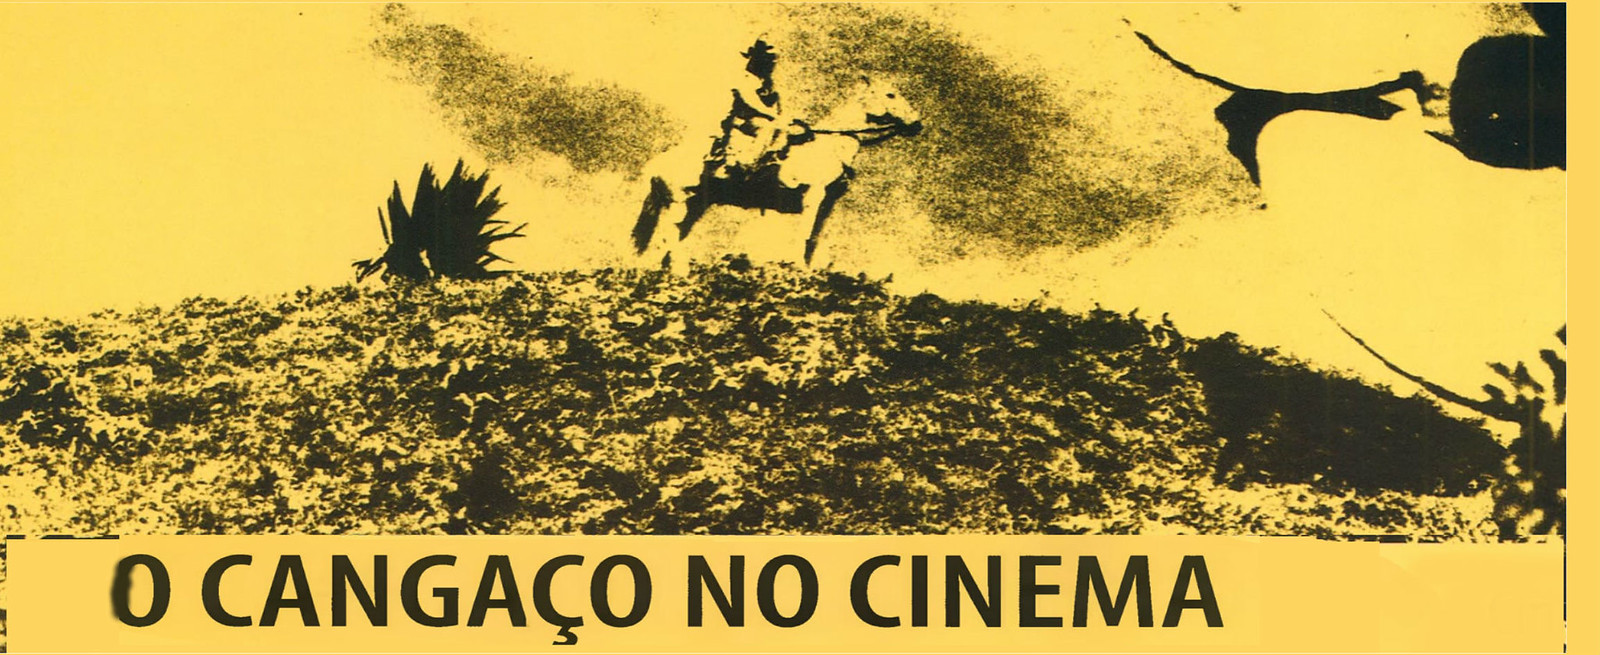 O Cangaço no Cinema